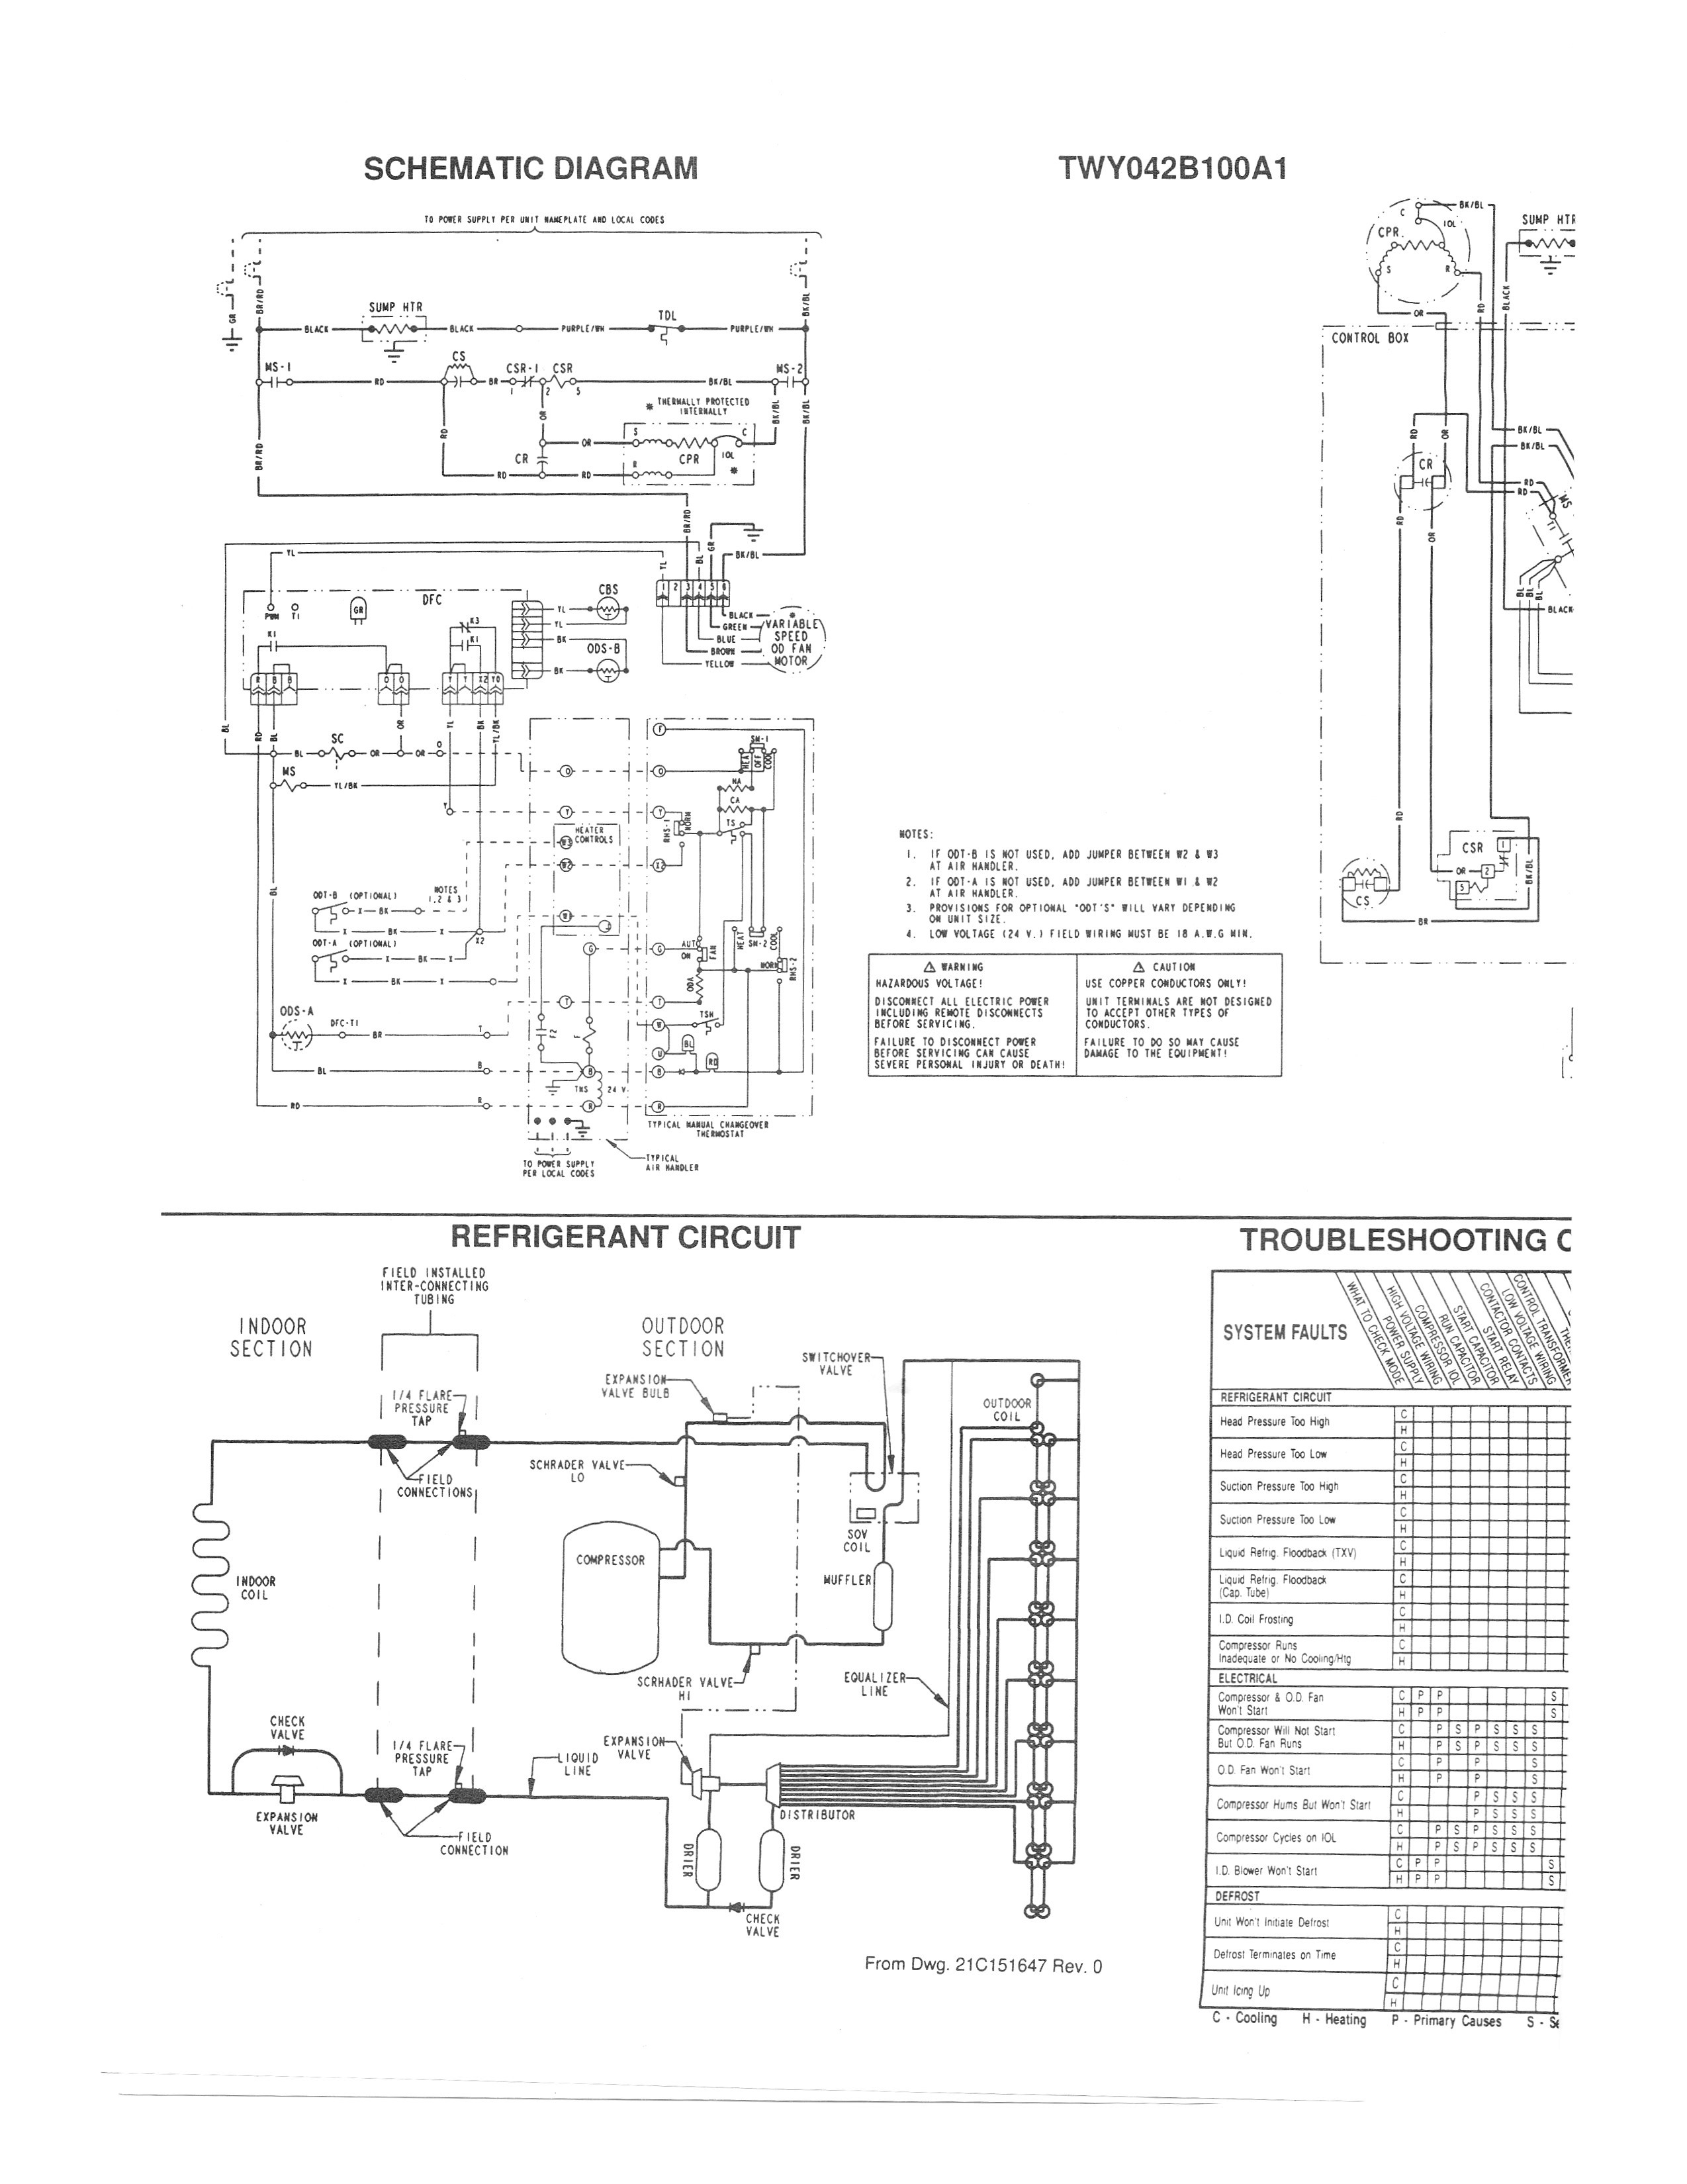 trane xv95 wiring diagram databasetrane xv95 wiring diagram wiring diagram database trane xr80 blower diagram trane thermostat wiring file vh56217